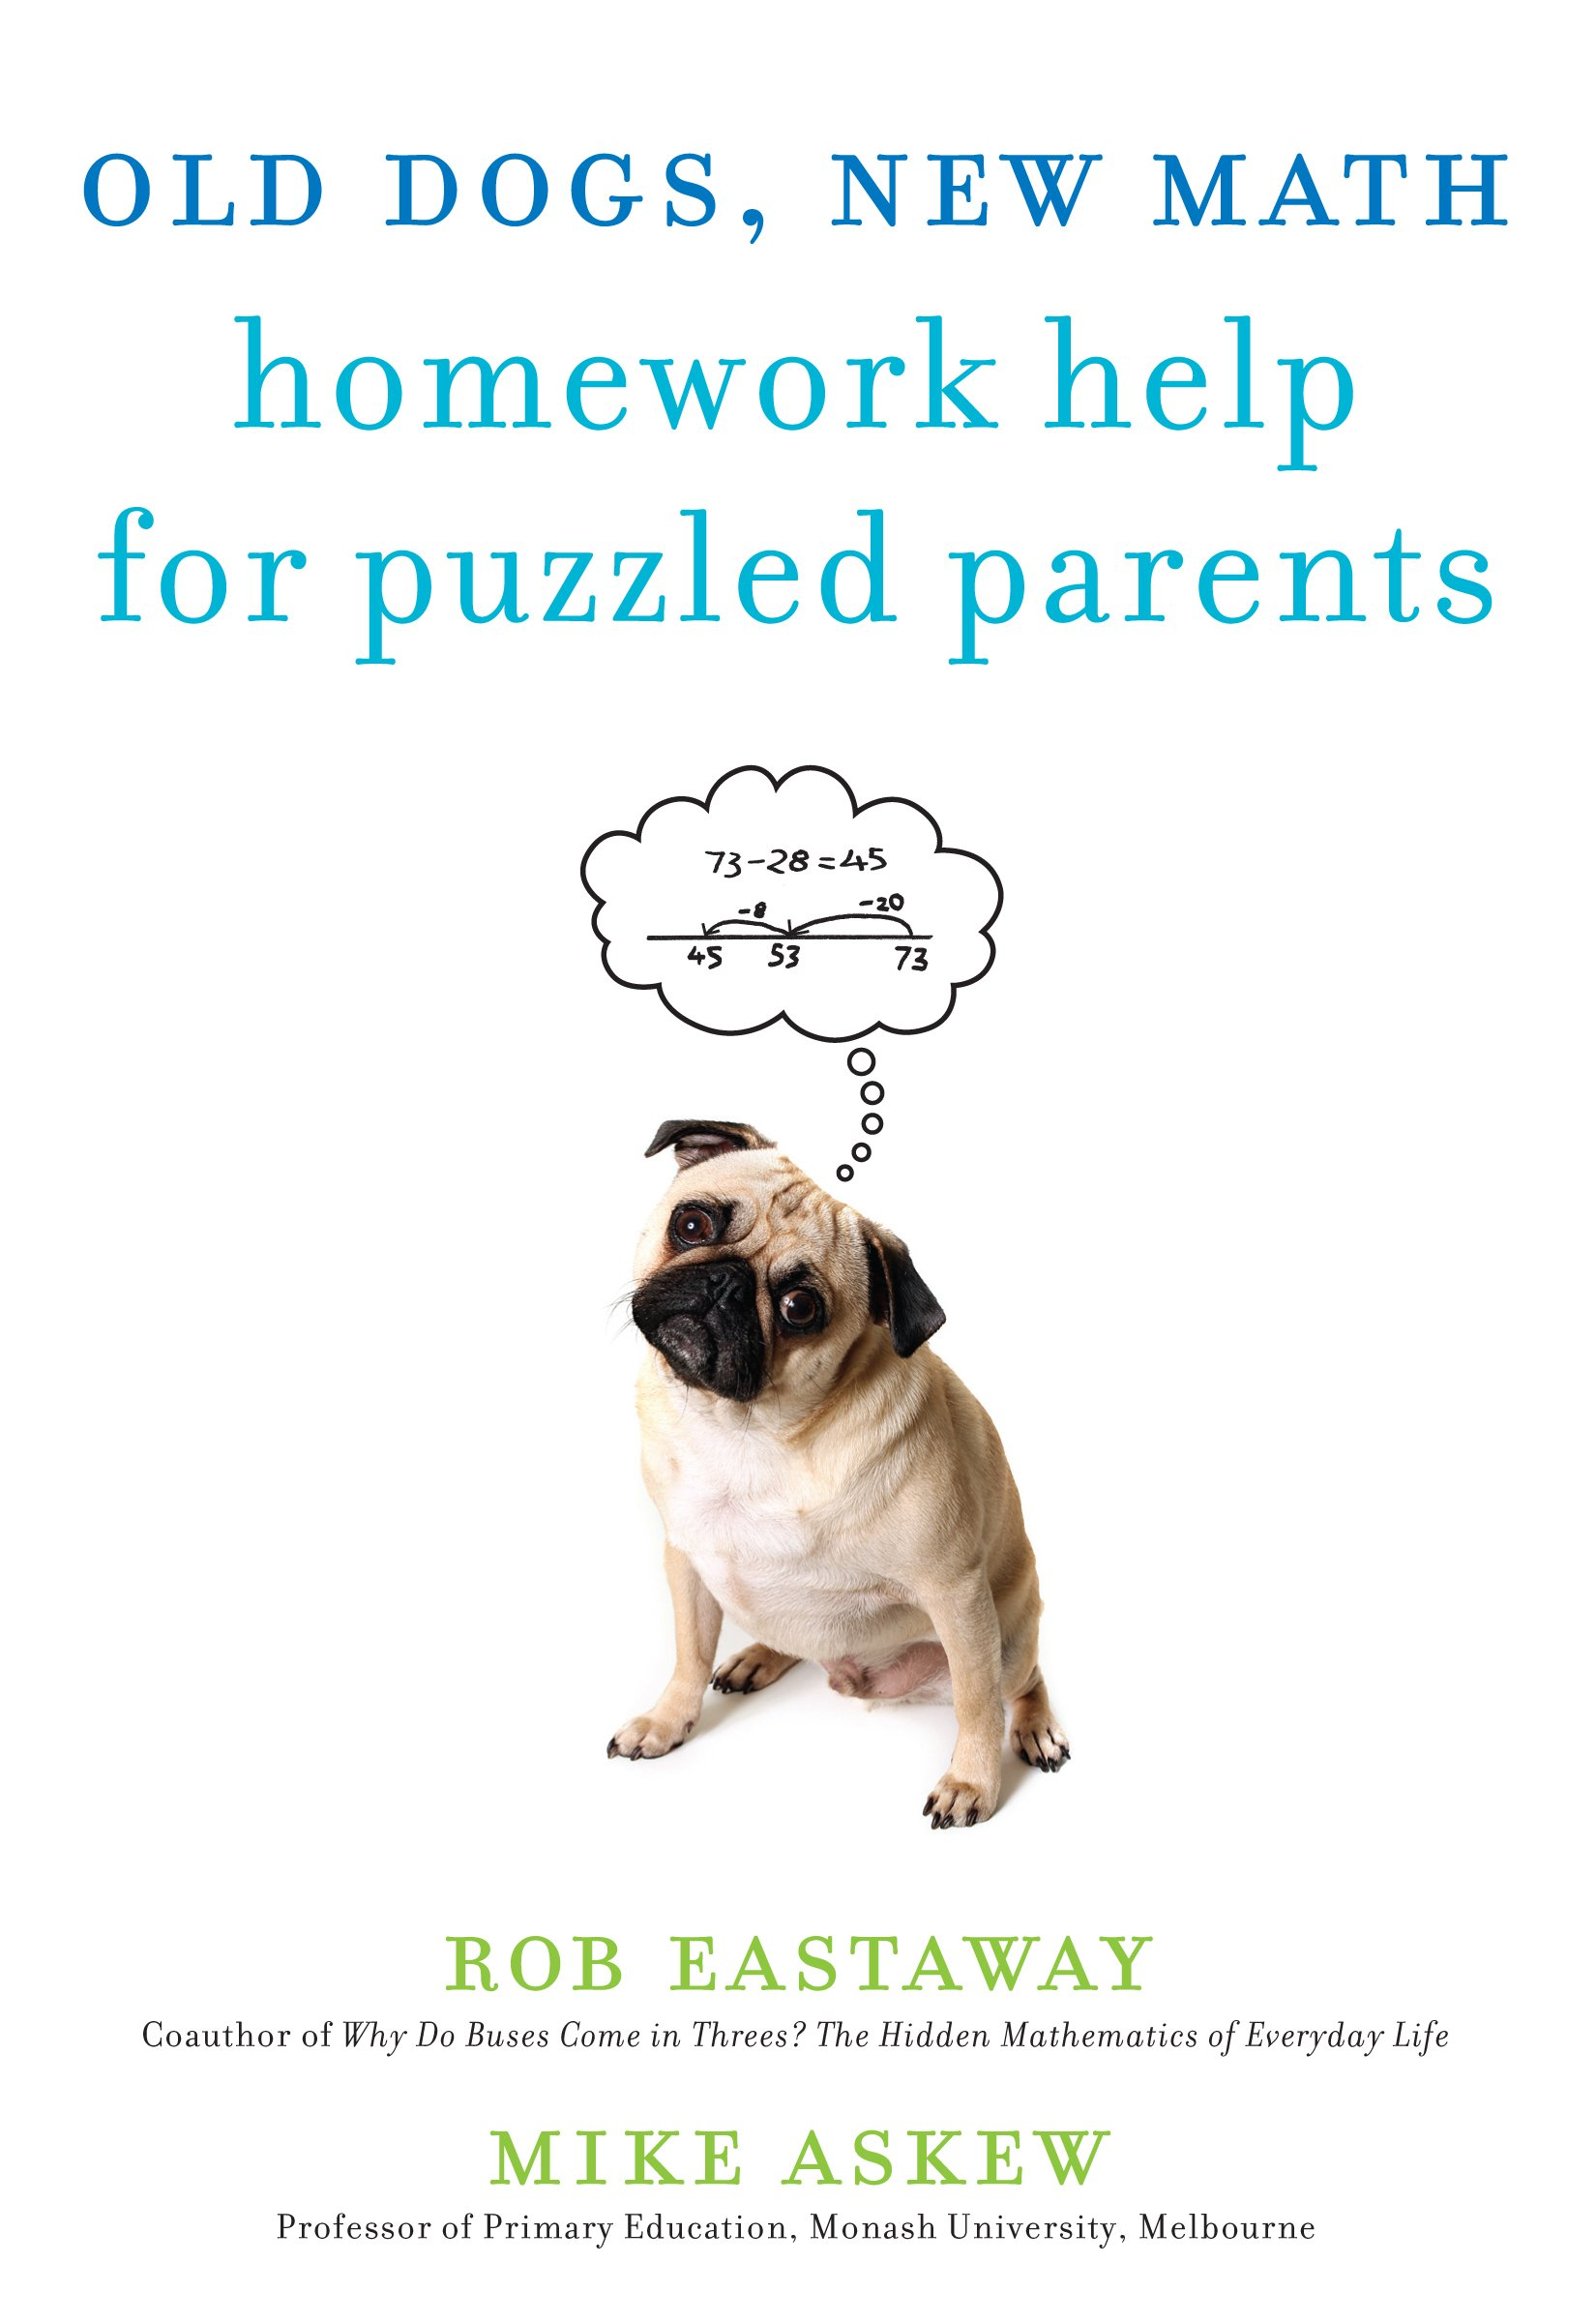 What are some good homework help websites